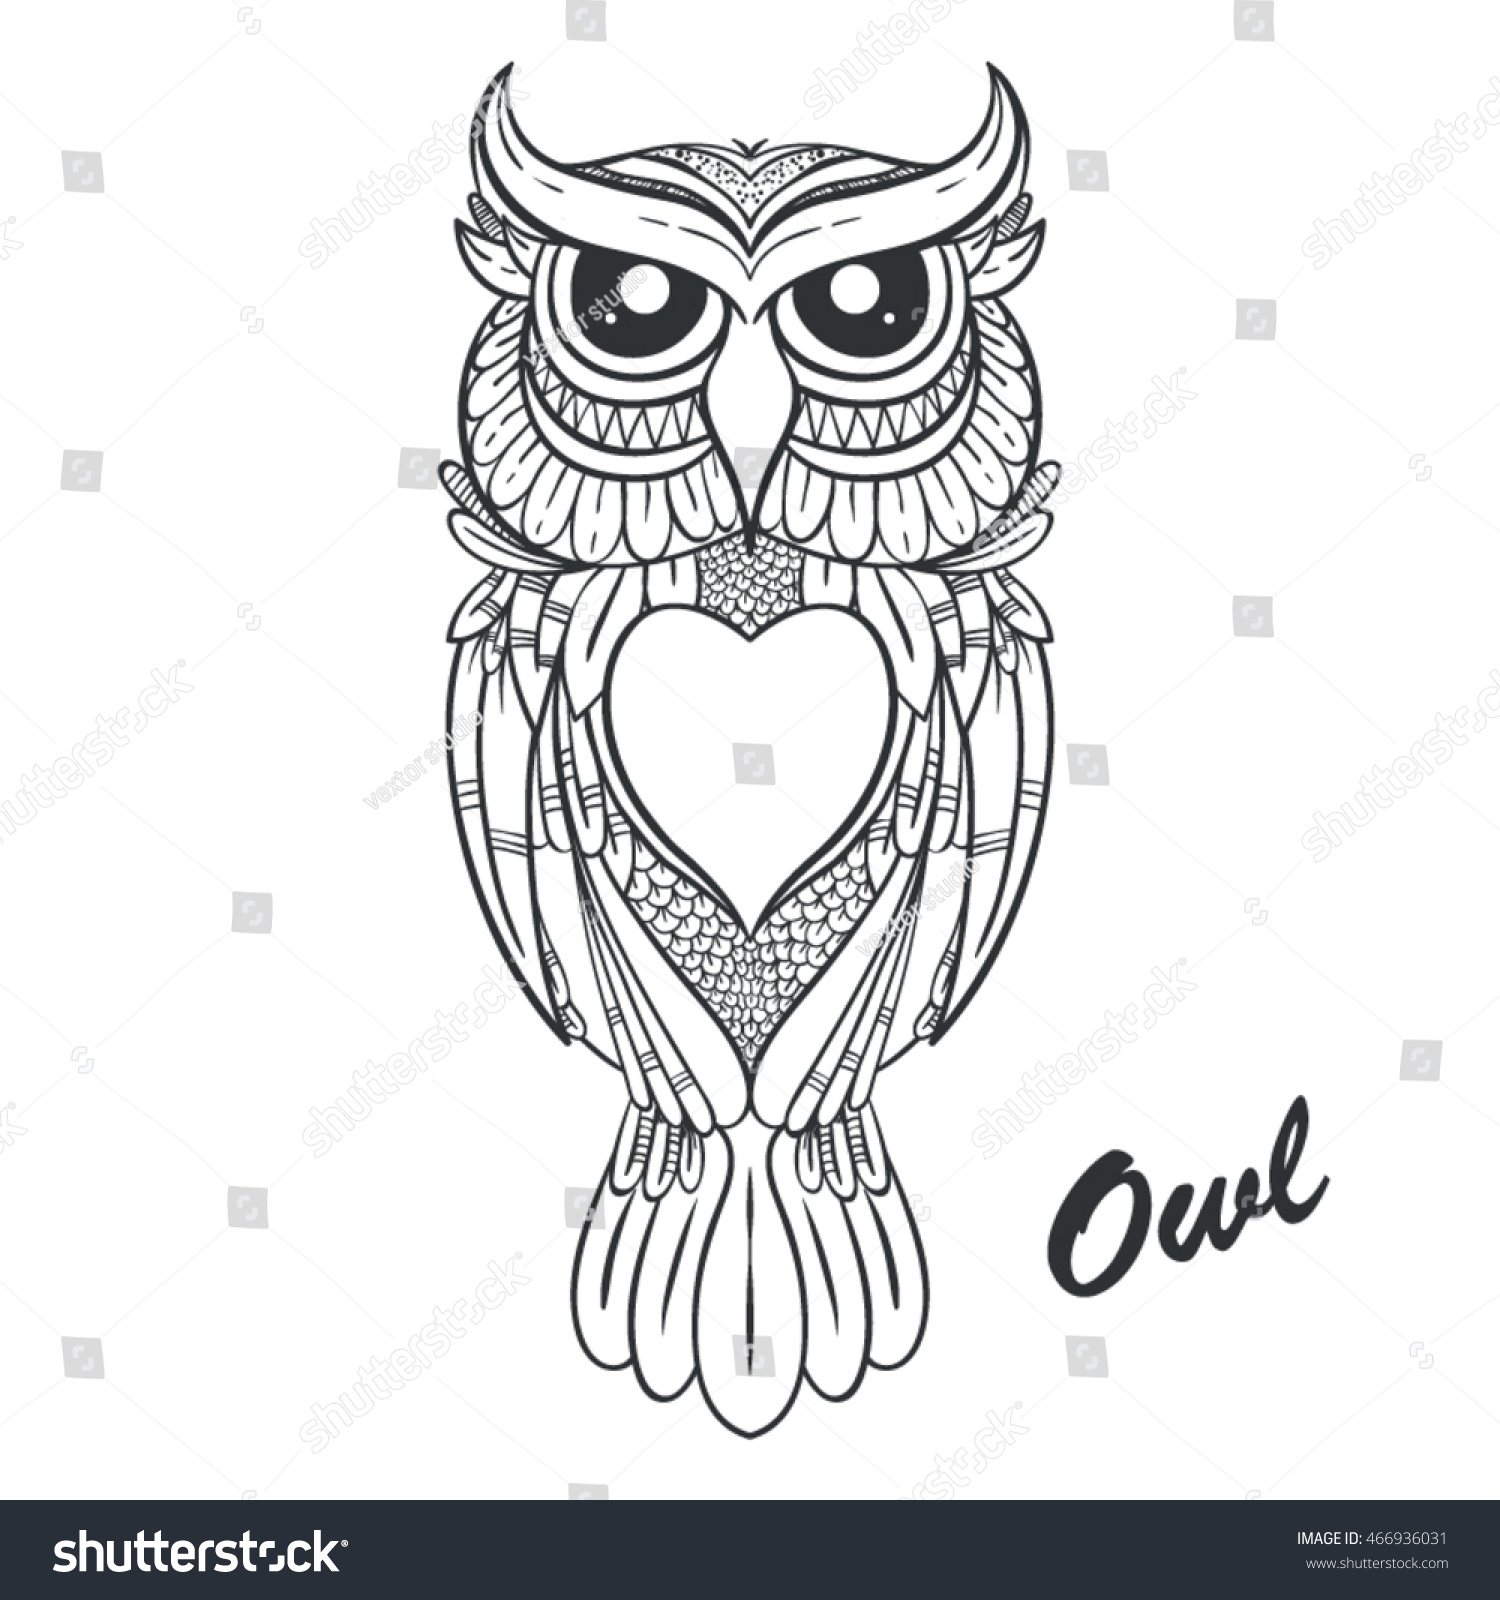 Vector Graphic Owl Coloring Stock Vector (Royalty Free) 466936031 ...